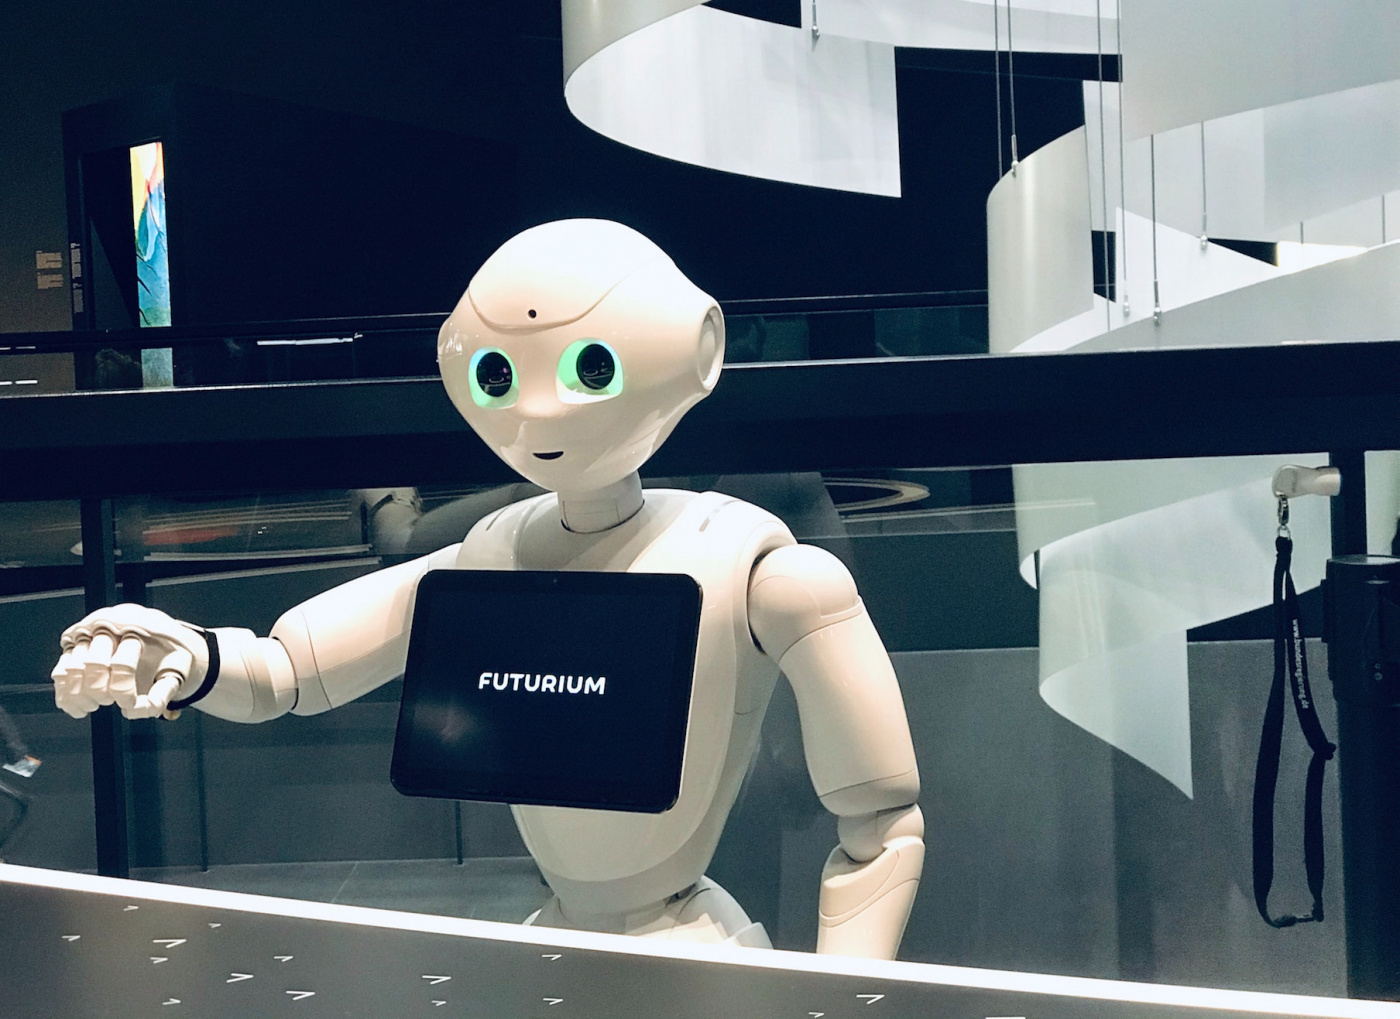 PSFK's Monthly Roundup Explores Robot Caretakers, Experimental Citizenship, At-Home Fitness Wars & More